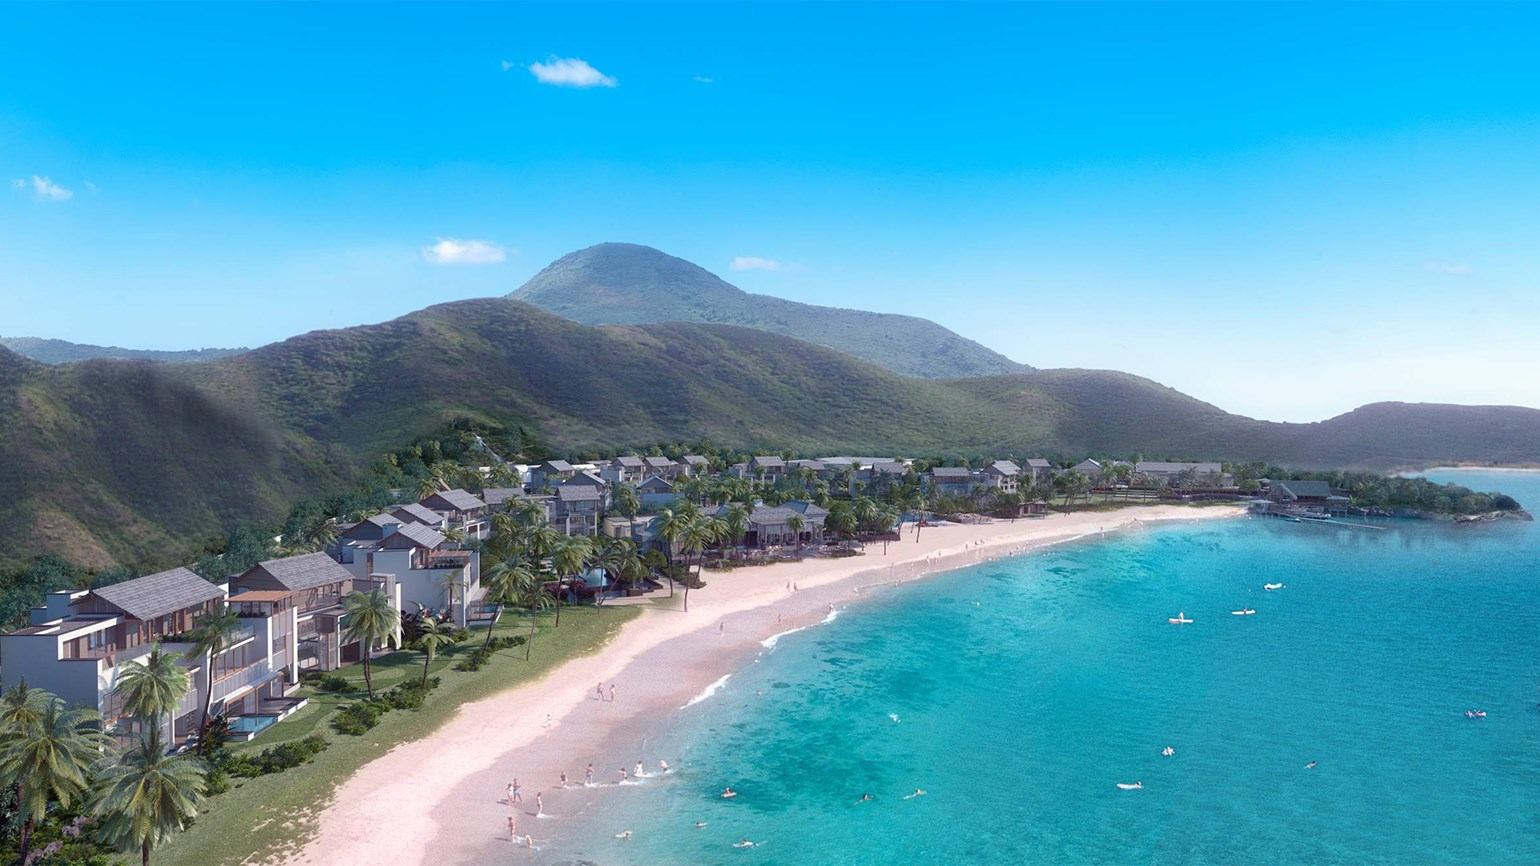 Opening rates set for Park Hyatt St. Kitts